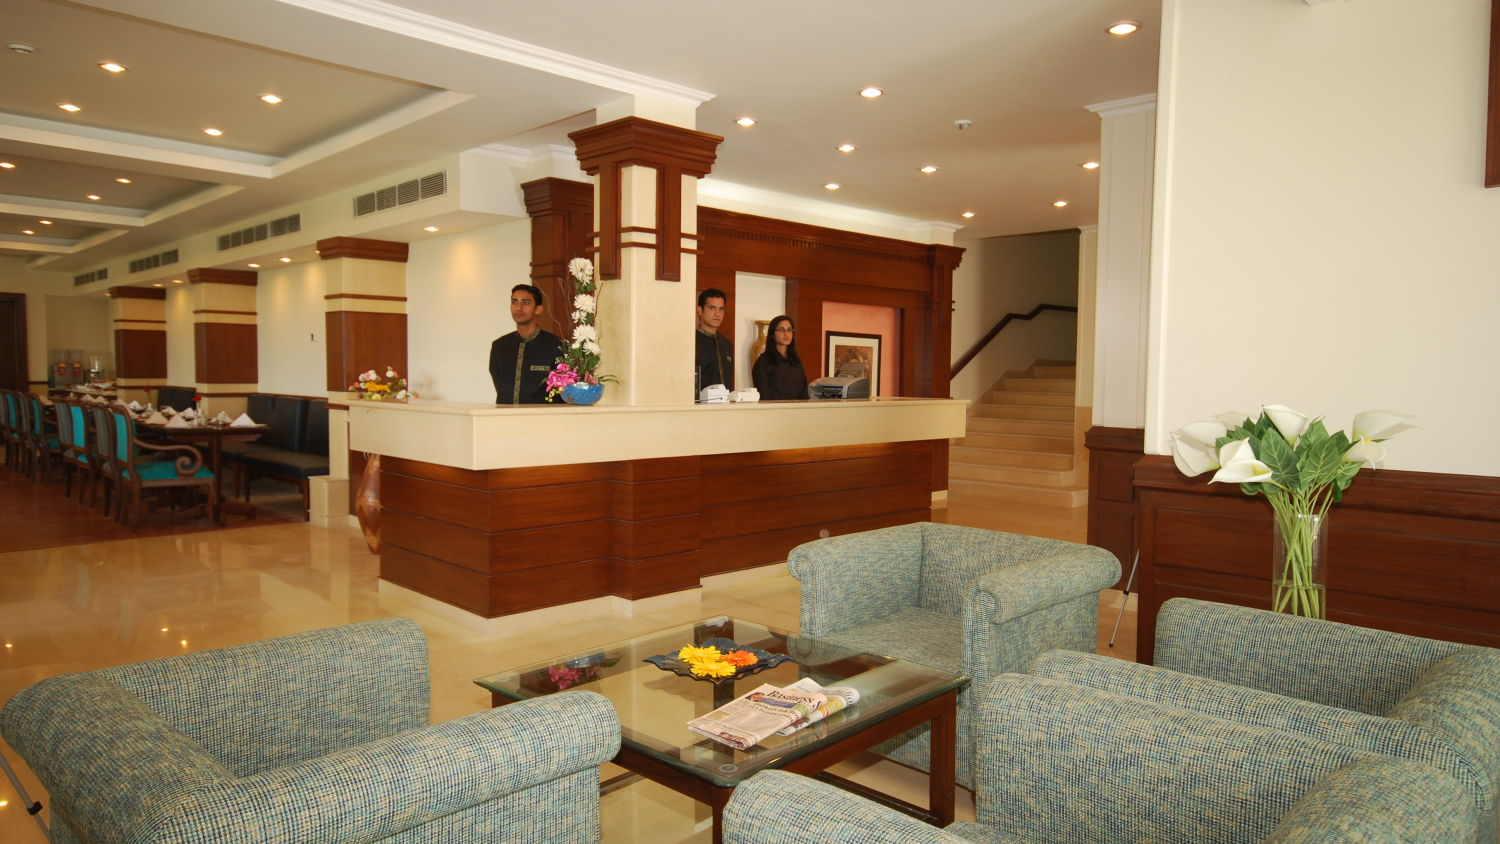 Lobby with sofas and a table at our hotel in Mussoorie, Hotel Madhuban Sarovar Portico, Mussoorie